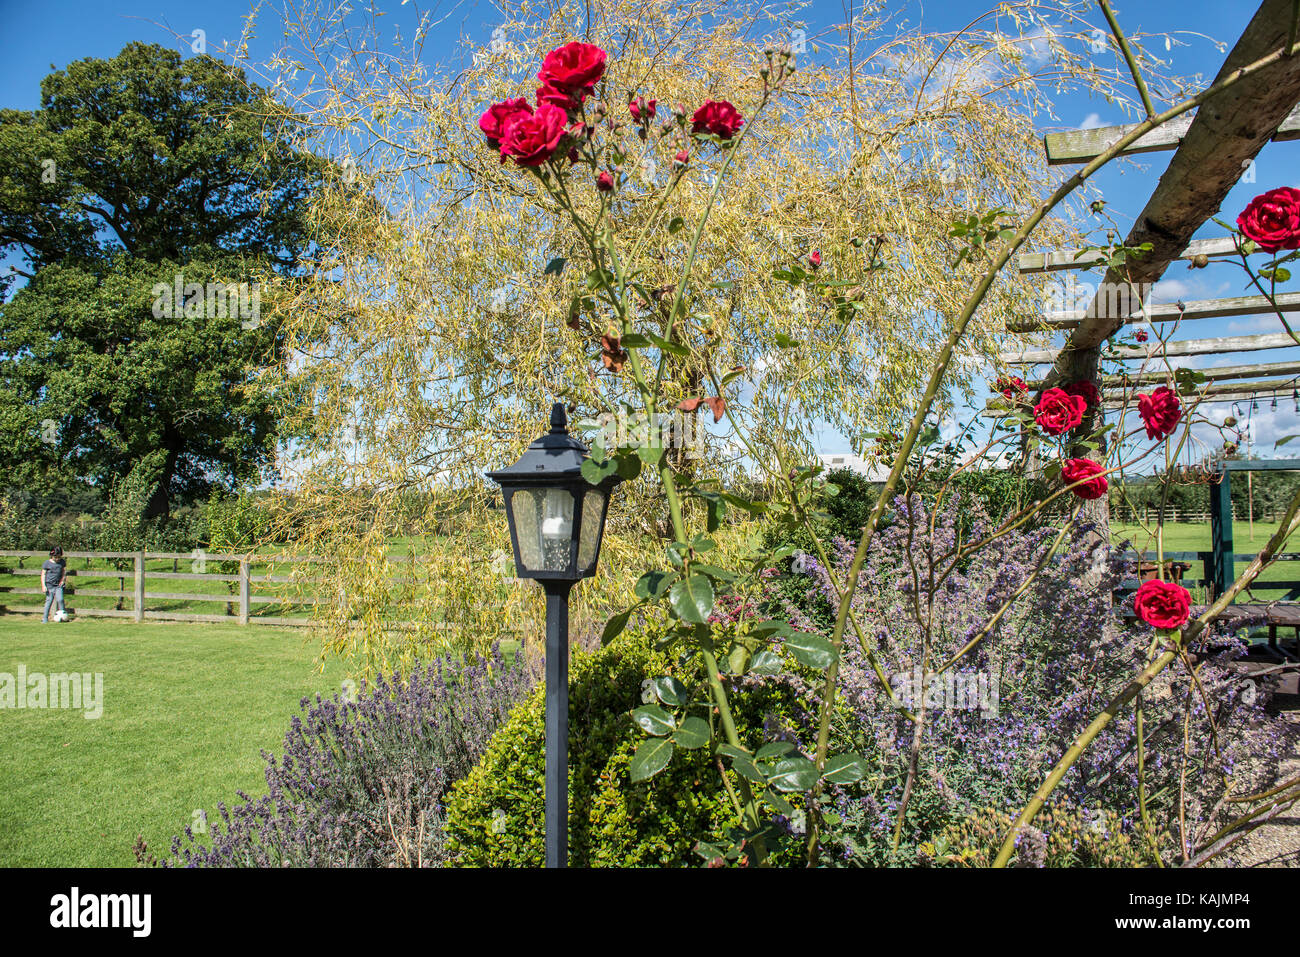 Country Garden, North Yorkshire, England - Stock Image